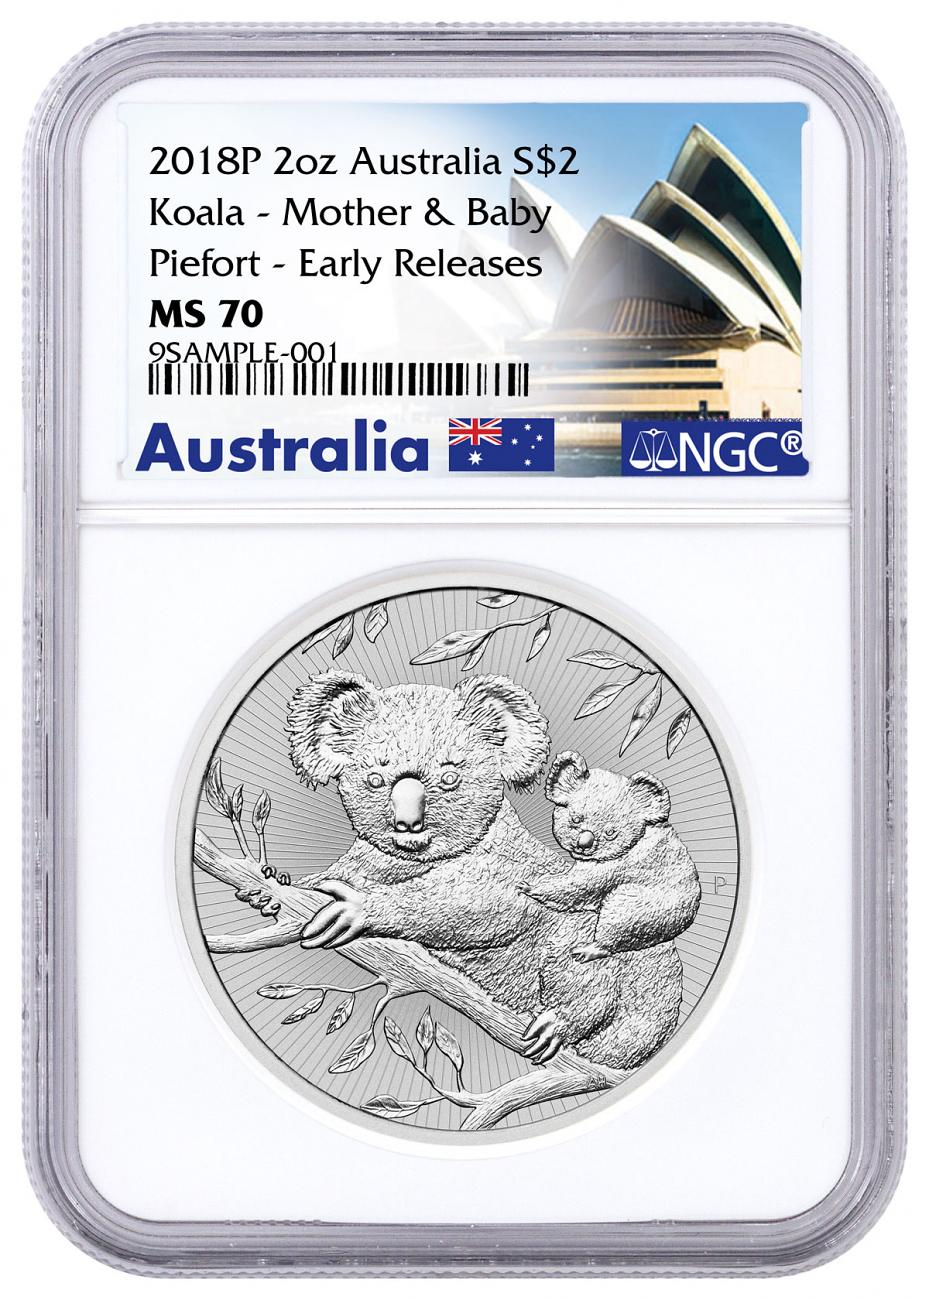 2018-P Australia 2 oz Silver Koala - Mother & Baby $2 Coin Piedfort NGC MS70 ER Exclusive Australia Label